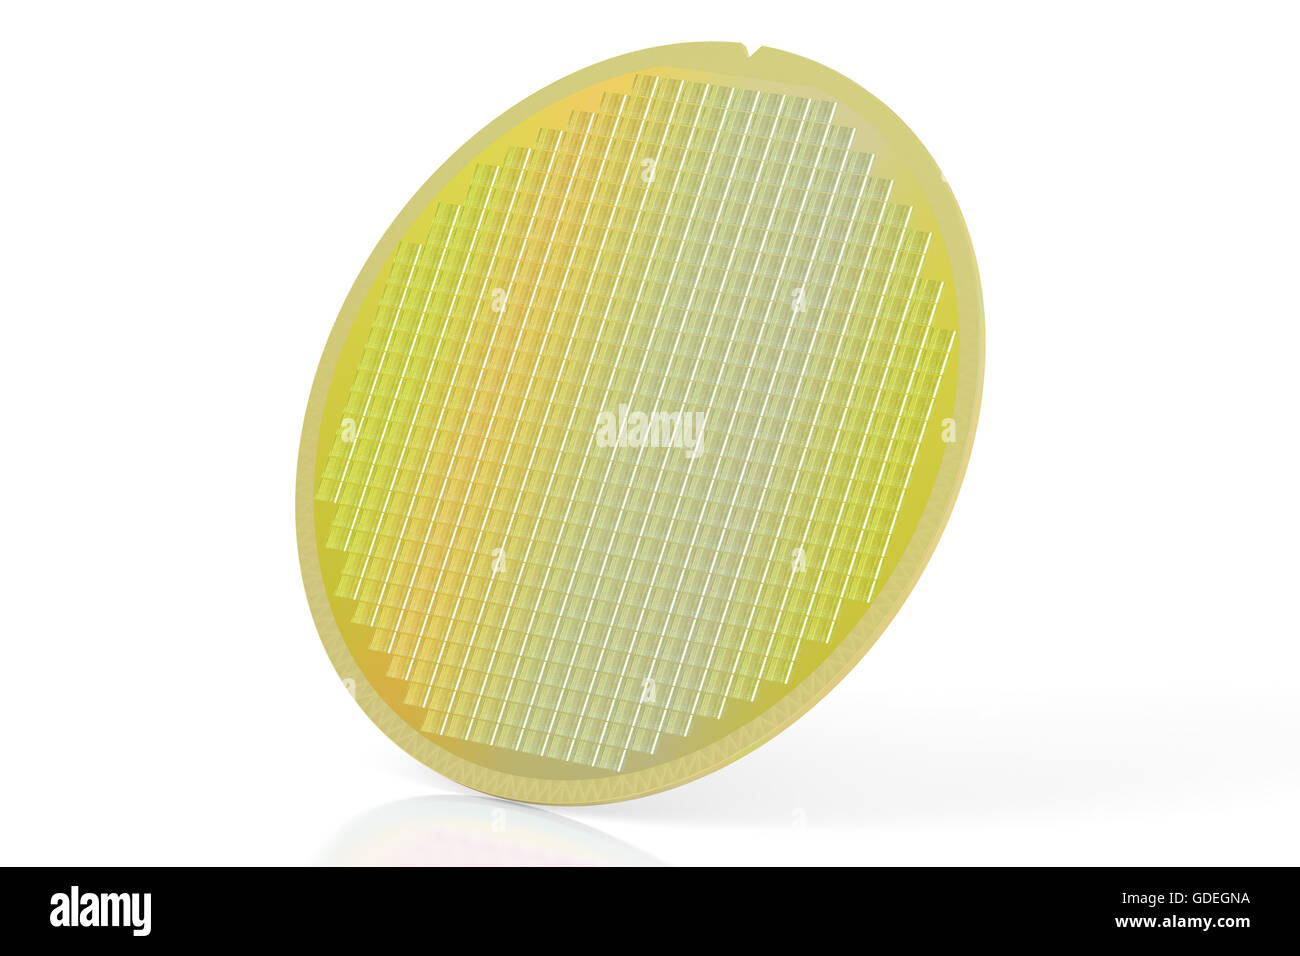 Silicon wafer with processor cores, 3D rendering isolated on white background - Stock Image